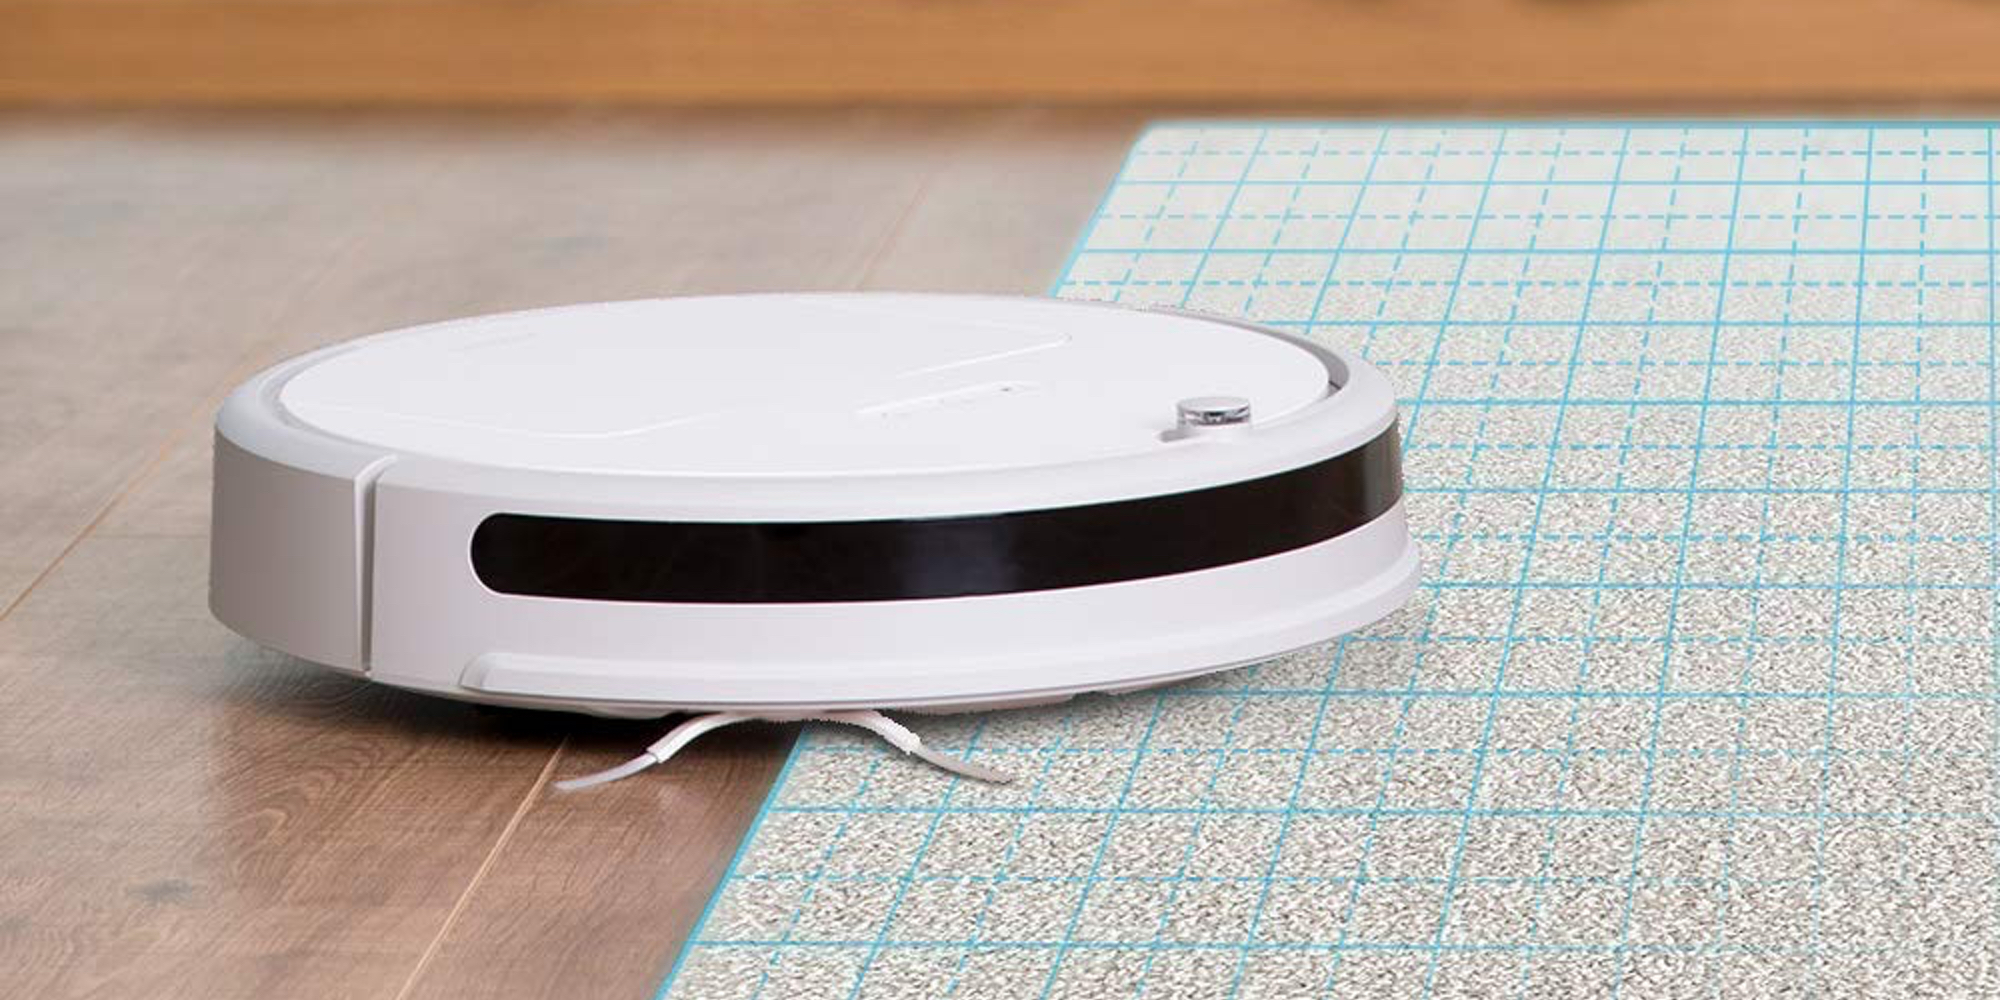 Roborock's Smart Robotic Vacuum takes care of spring cleaning at $247.50 (Reg. $330)